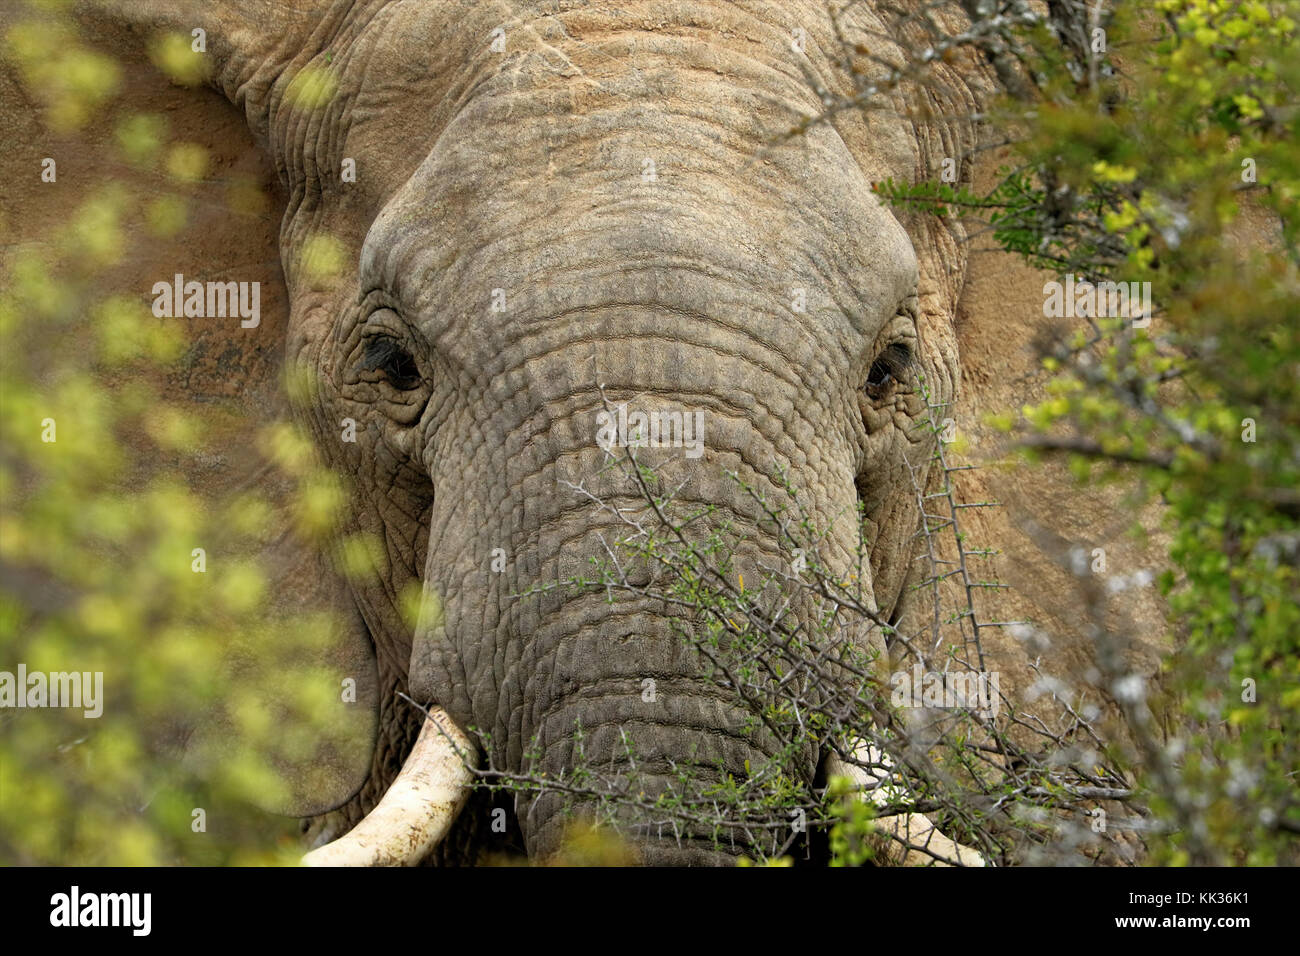 Elephants in the Addo Elephants National Park, South Africa. - Stock Image